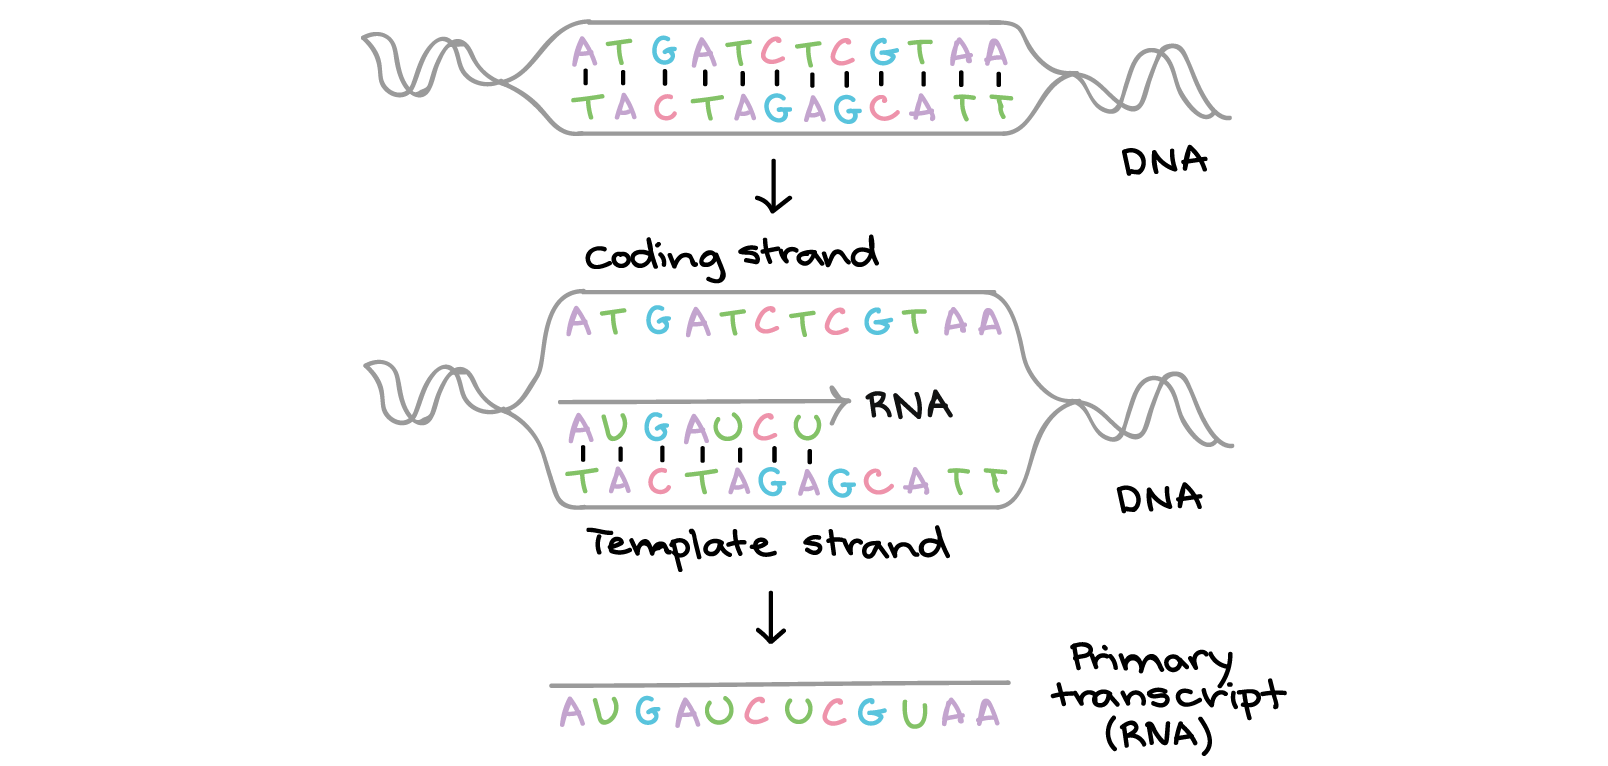 worksheet Dna Vs Rna Worksheet dna replication and rna transcription translation video khan academy